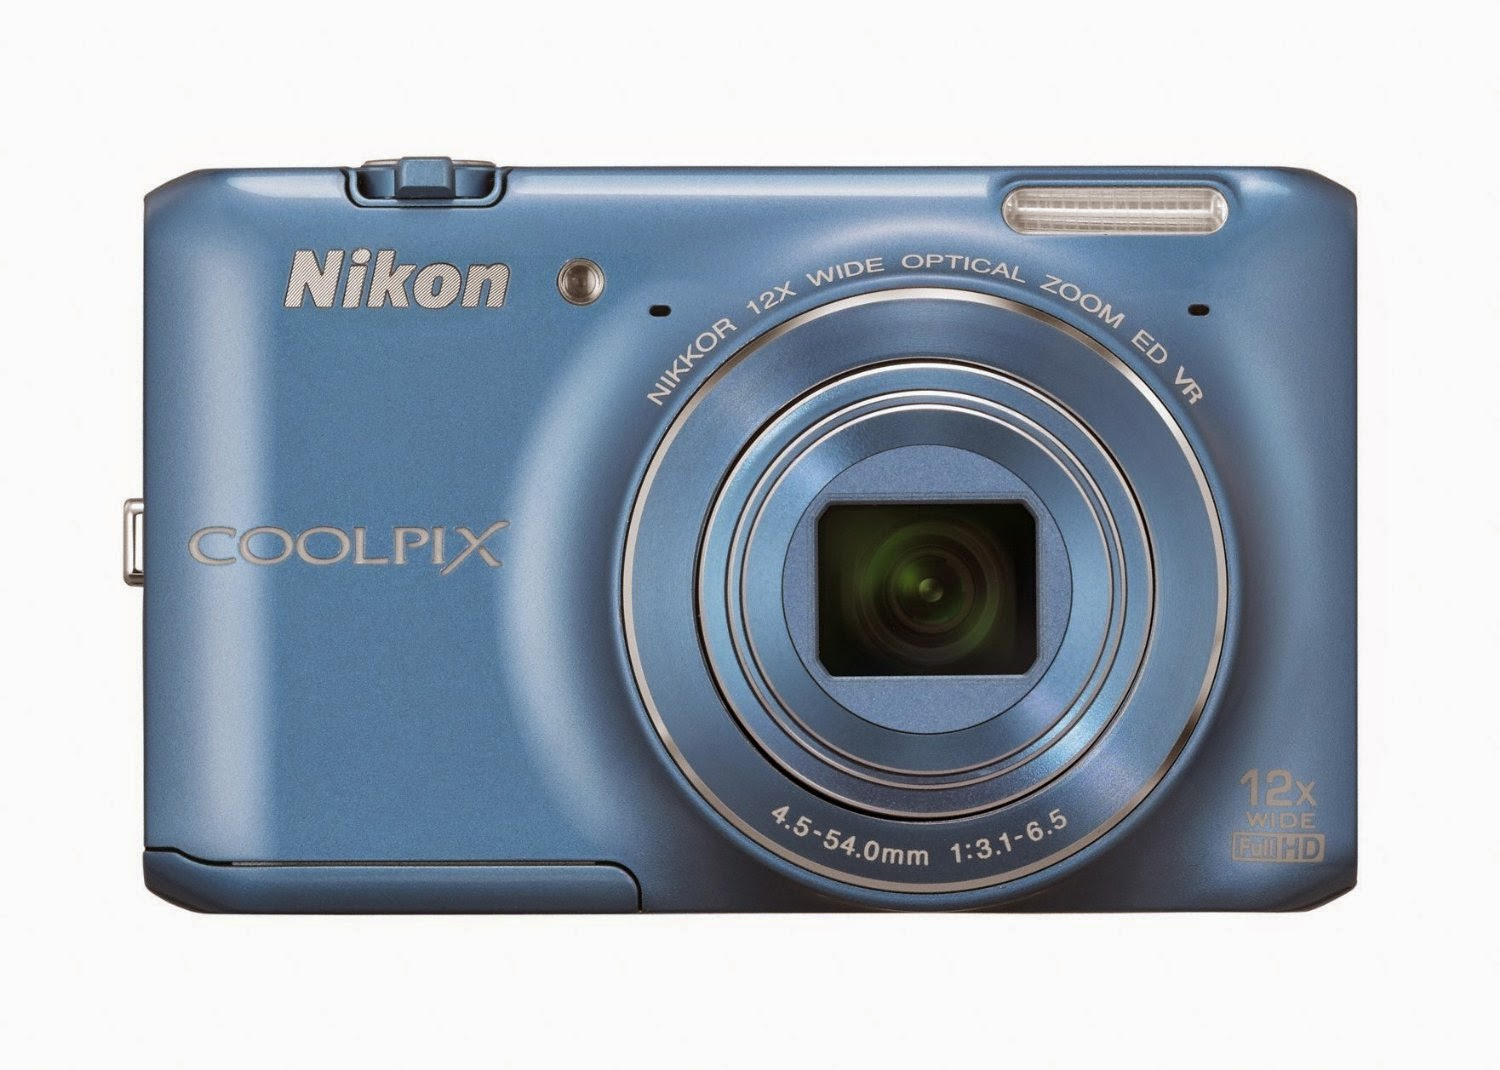 Nikon Coolpix S6400 16.0MP Point-and-Shoot Digital Camera (Blue) with 4GB Card, Camera Pouch, HDMI Cable for Rs 8499